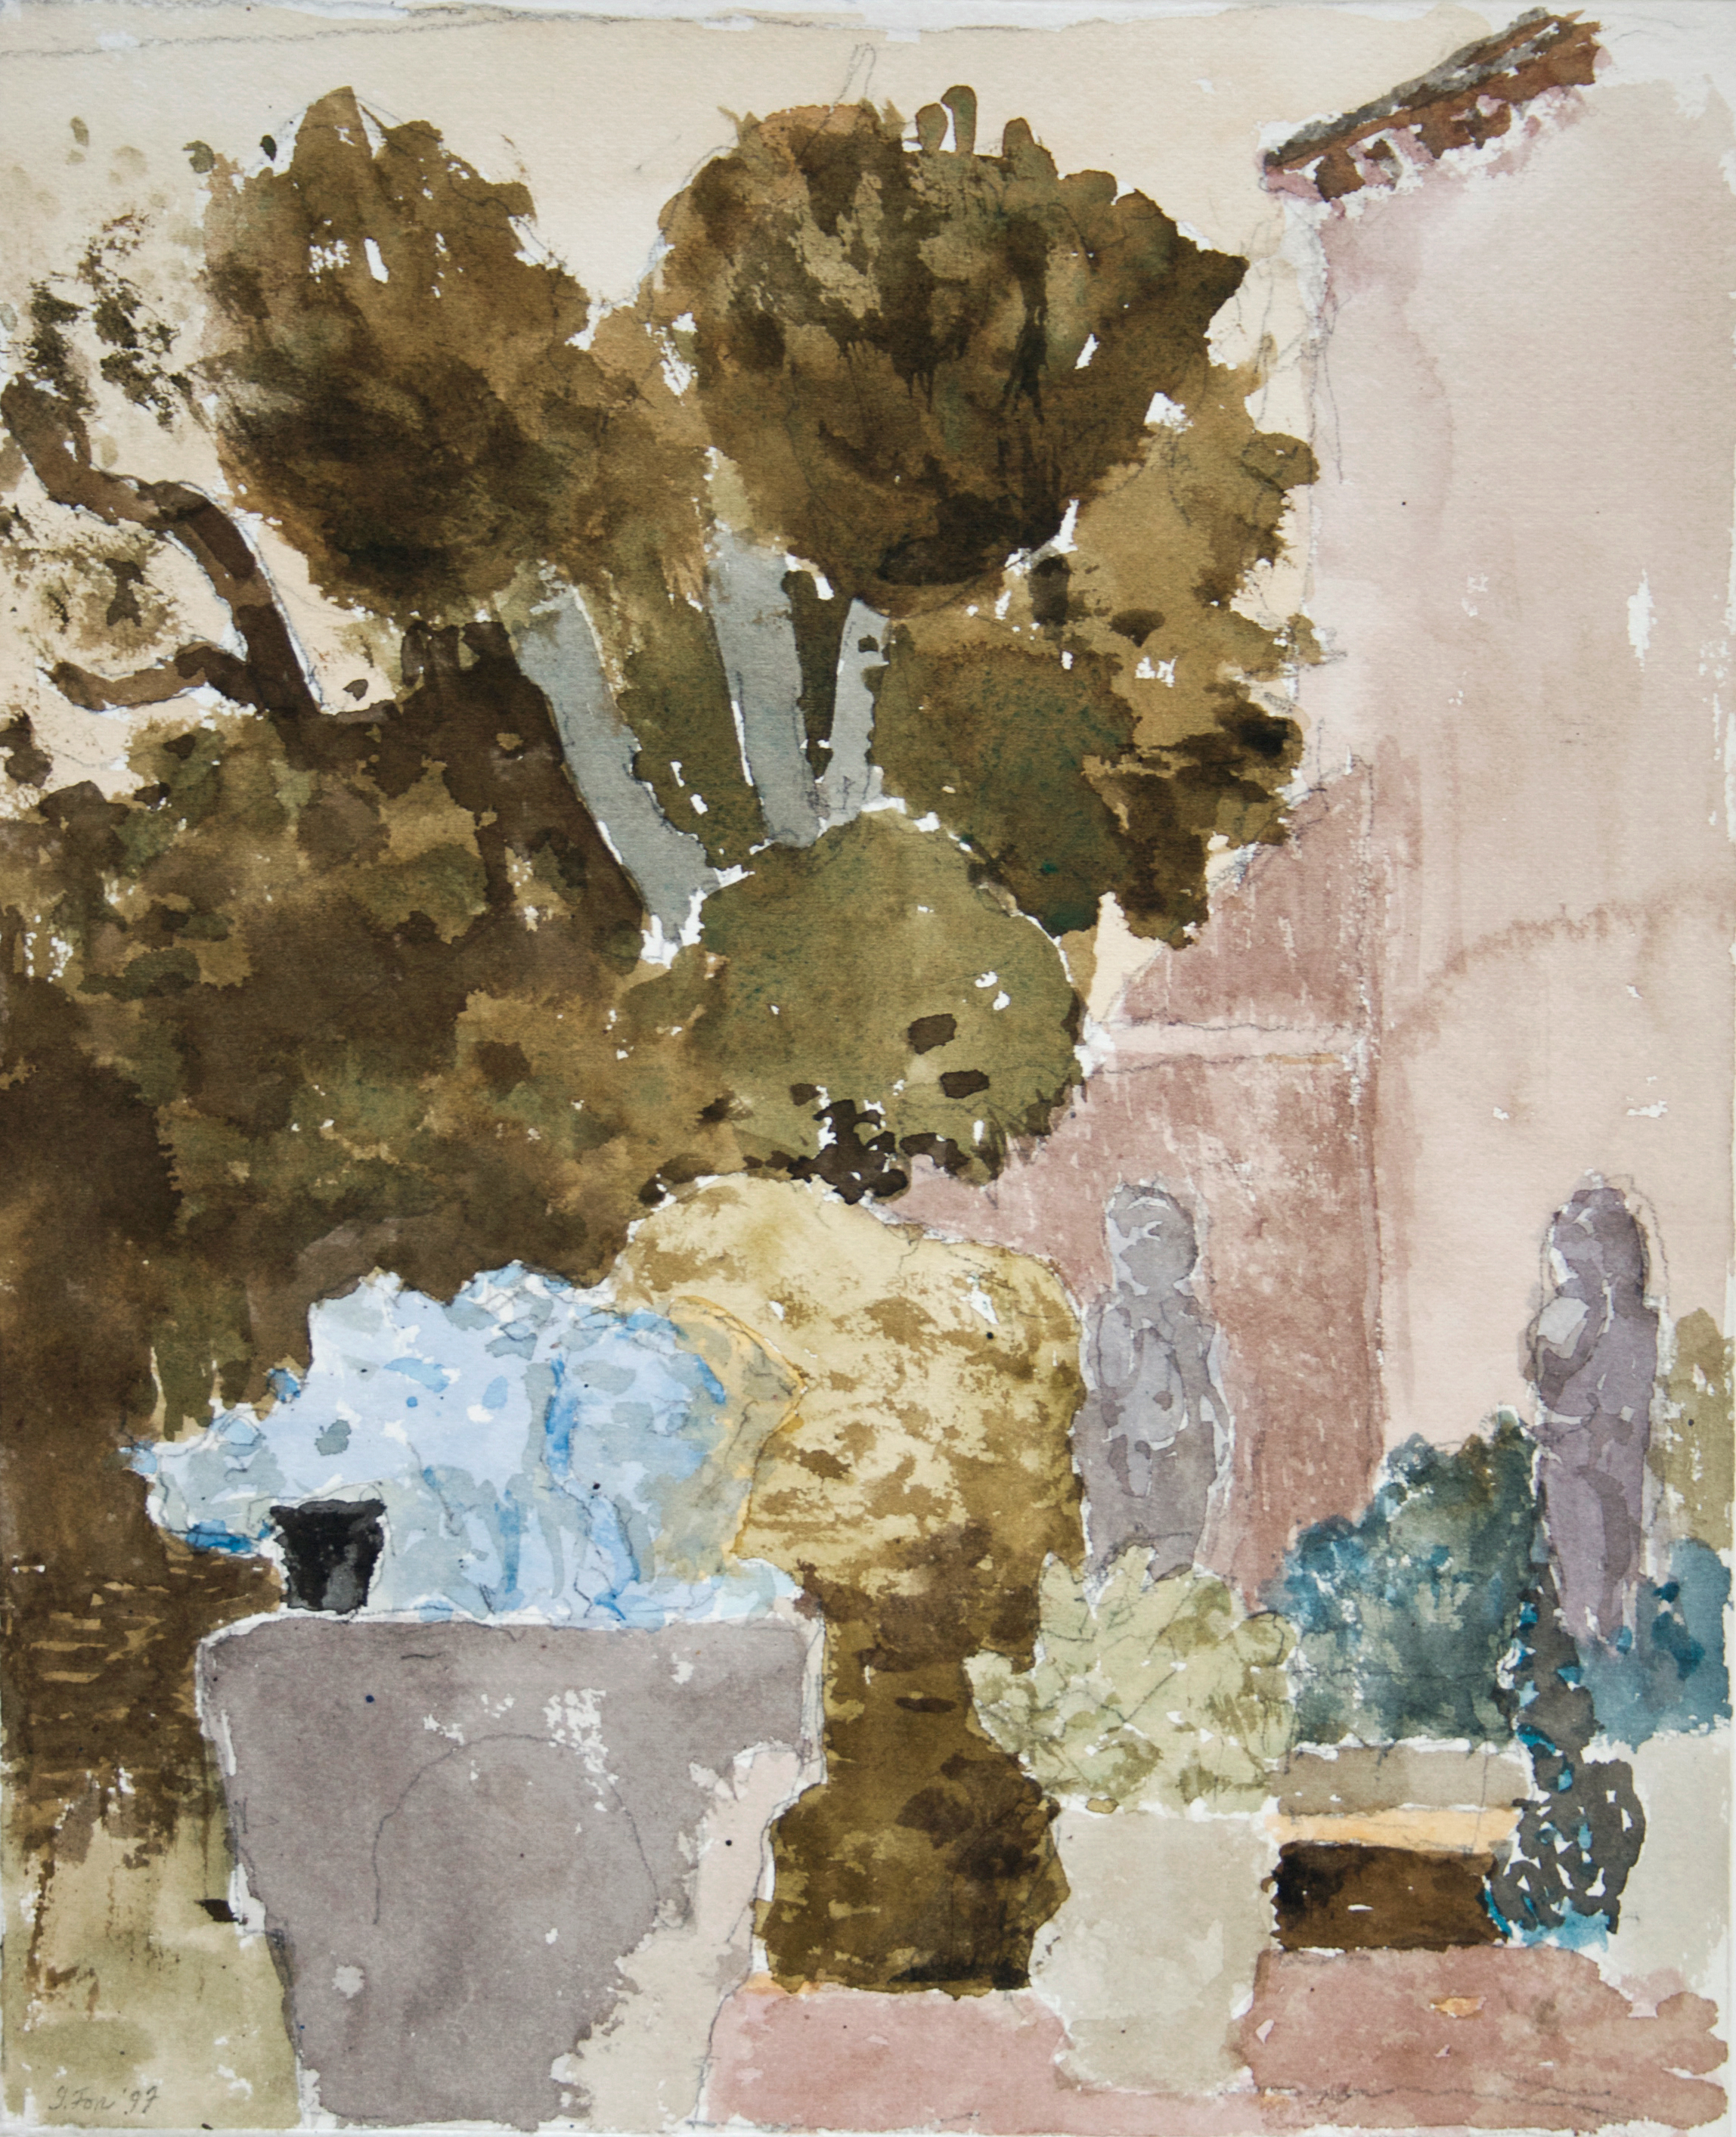 1997_Corner_of_the_Habsburg_Garden_Venice_watercolour_and_charcoal_on_paper_16x13in_WPF349.jpg